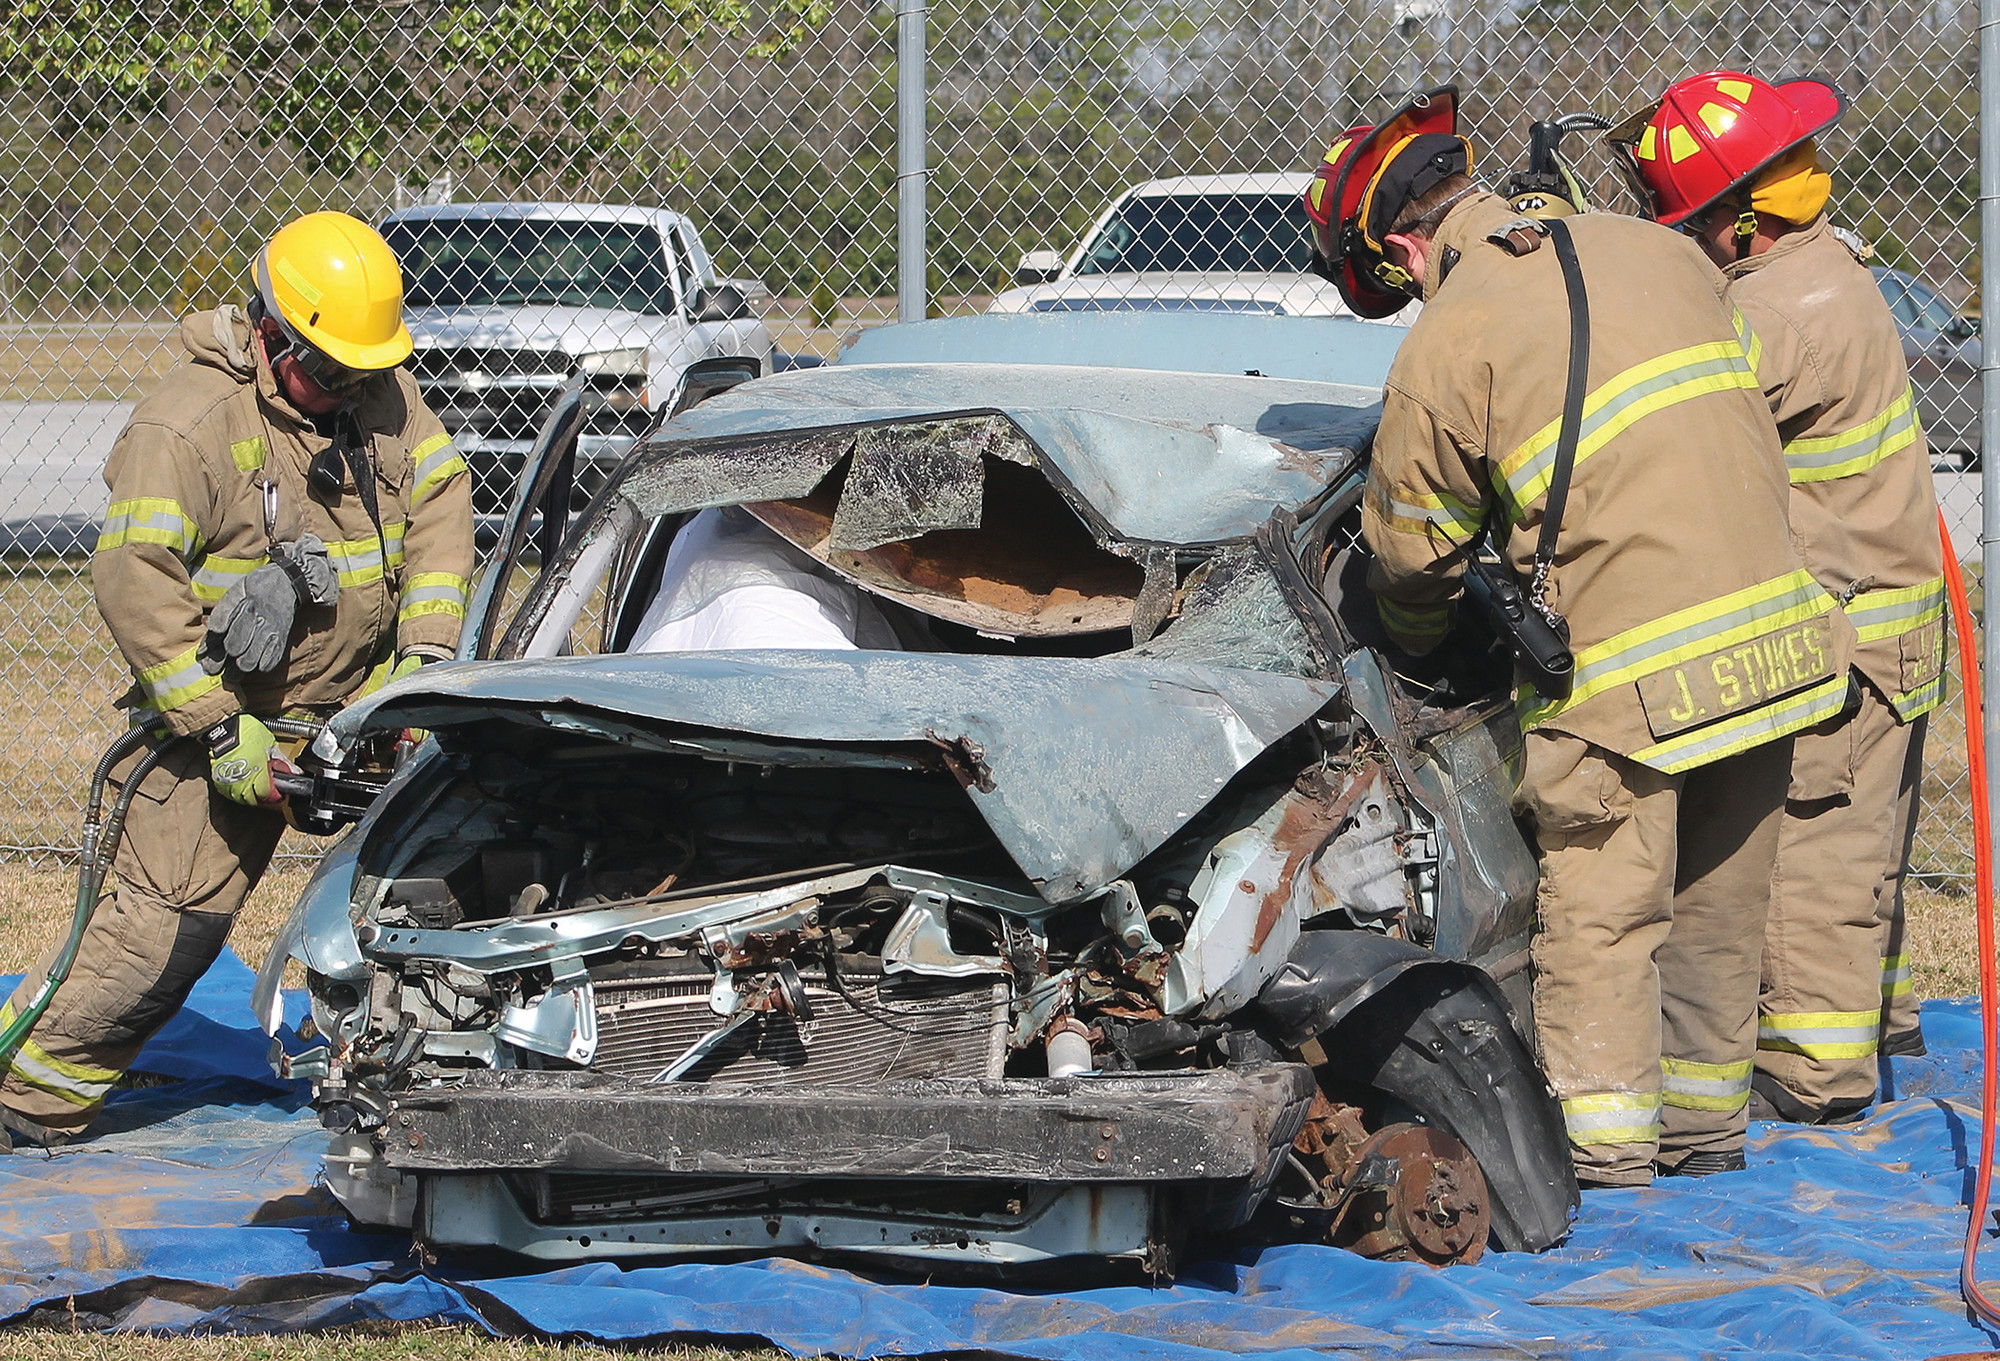 Firefighters with the Clarendon County Fire Department demonstrate how difficult it is to extricate individuals trapped in a vehicle.